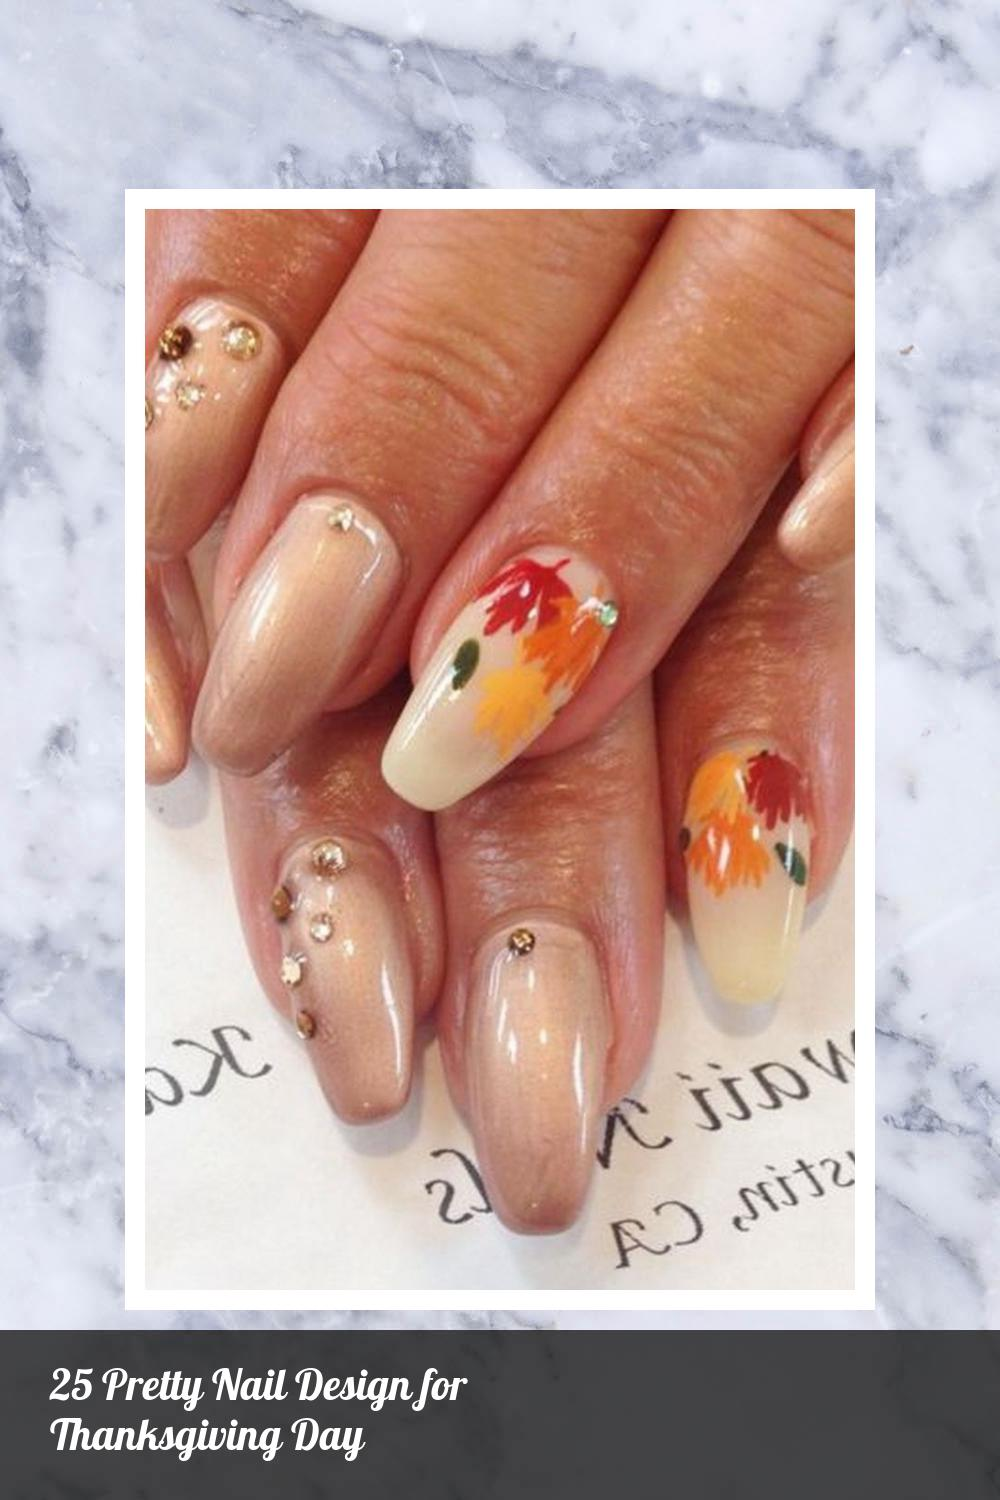 25 Pretty Nail Design for Thanksgiving Day 14